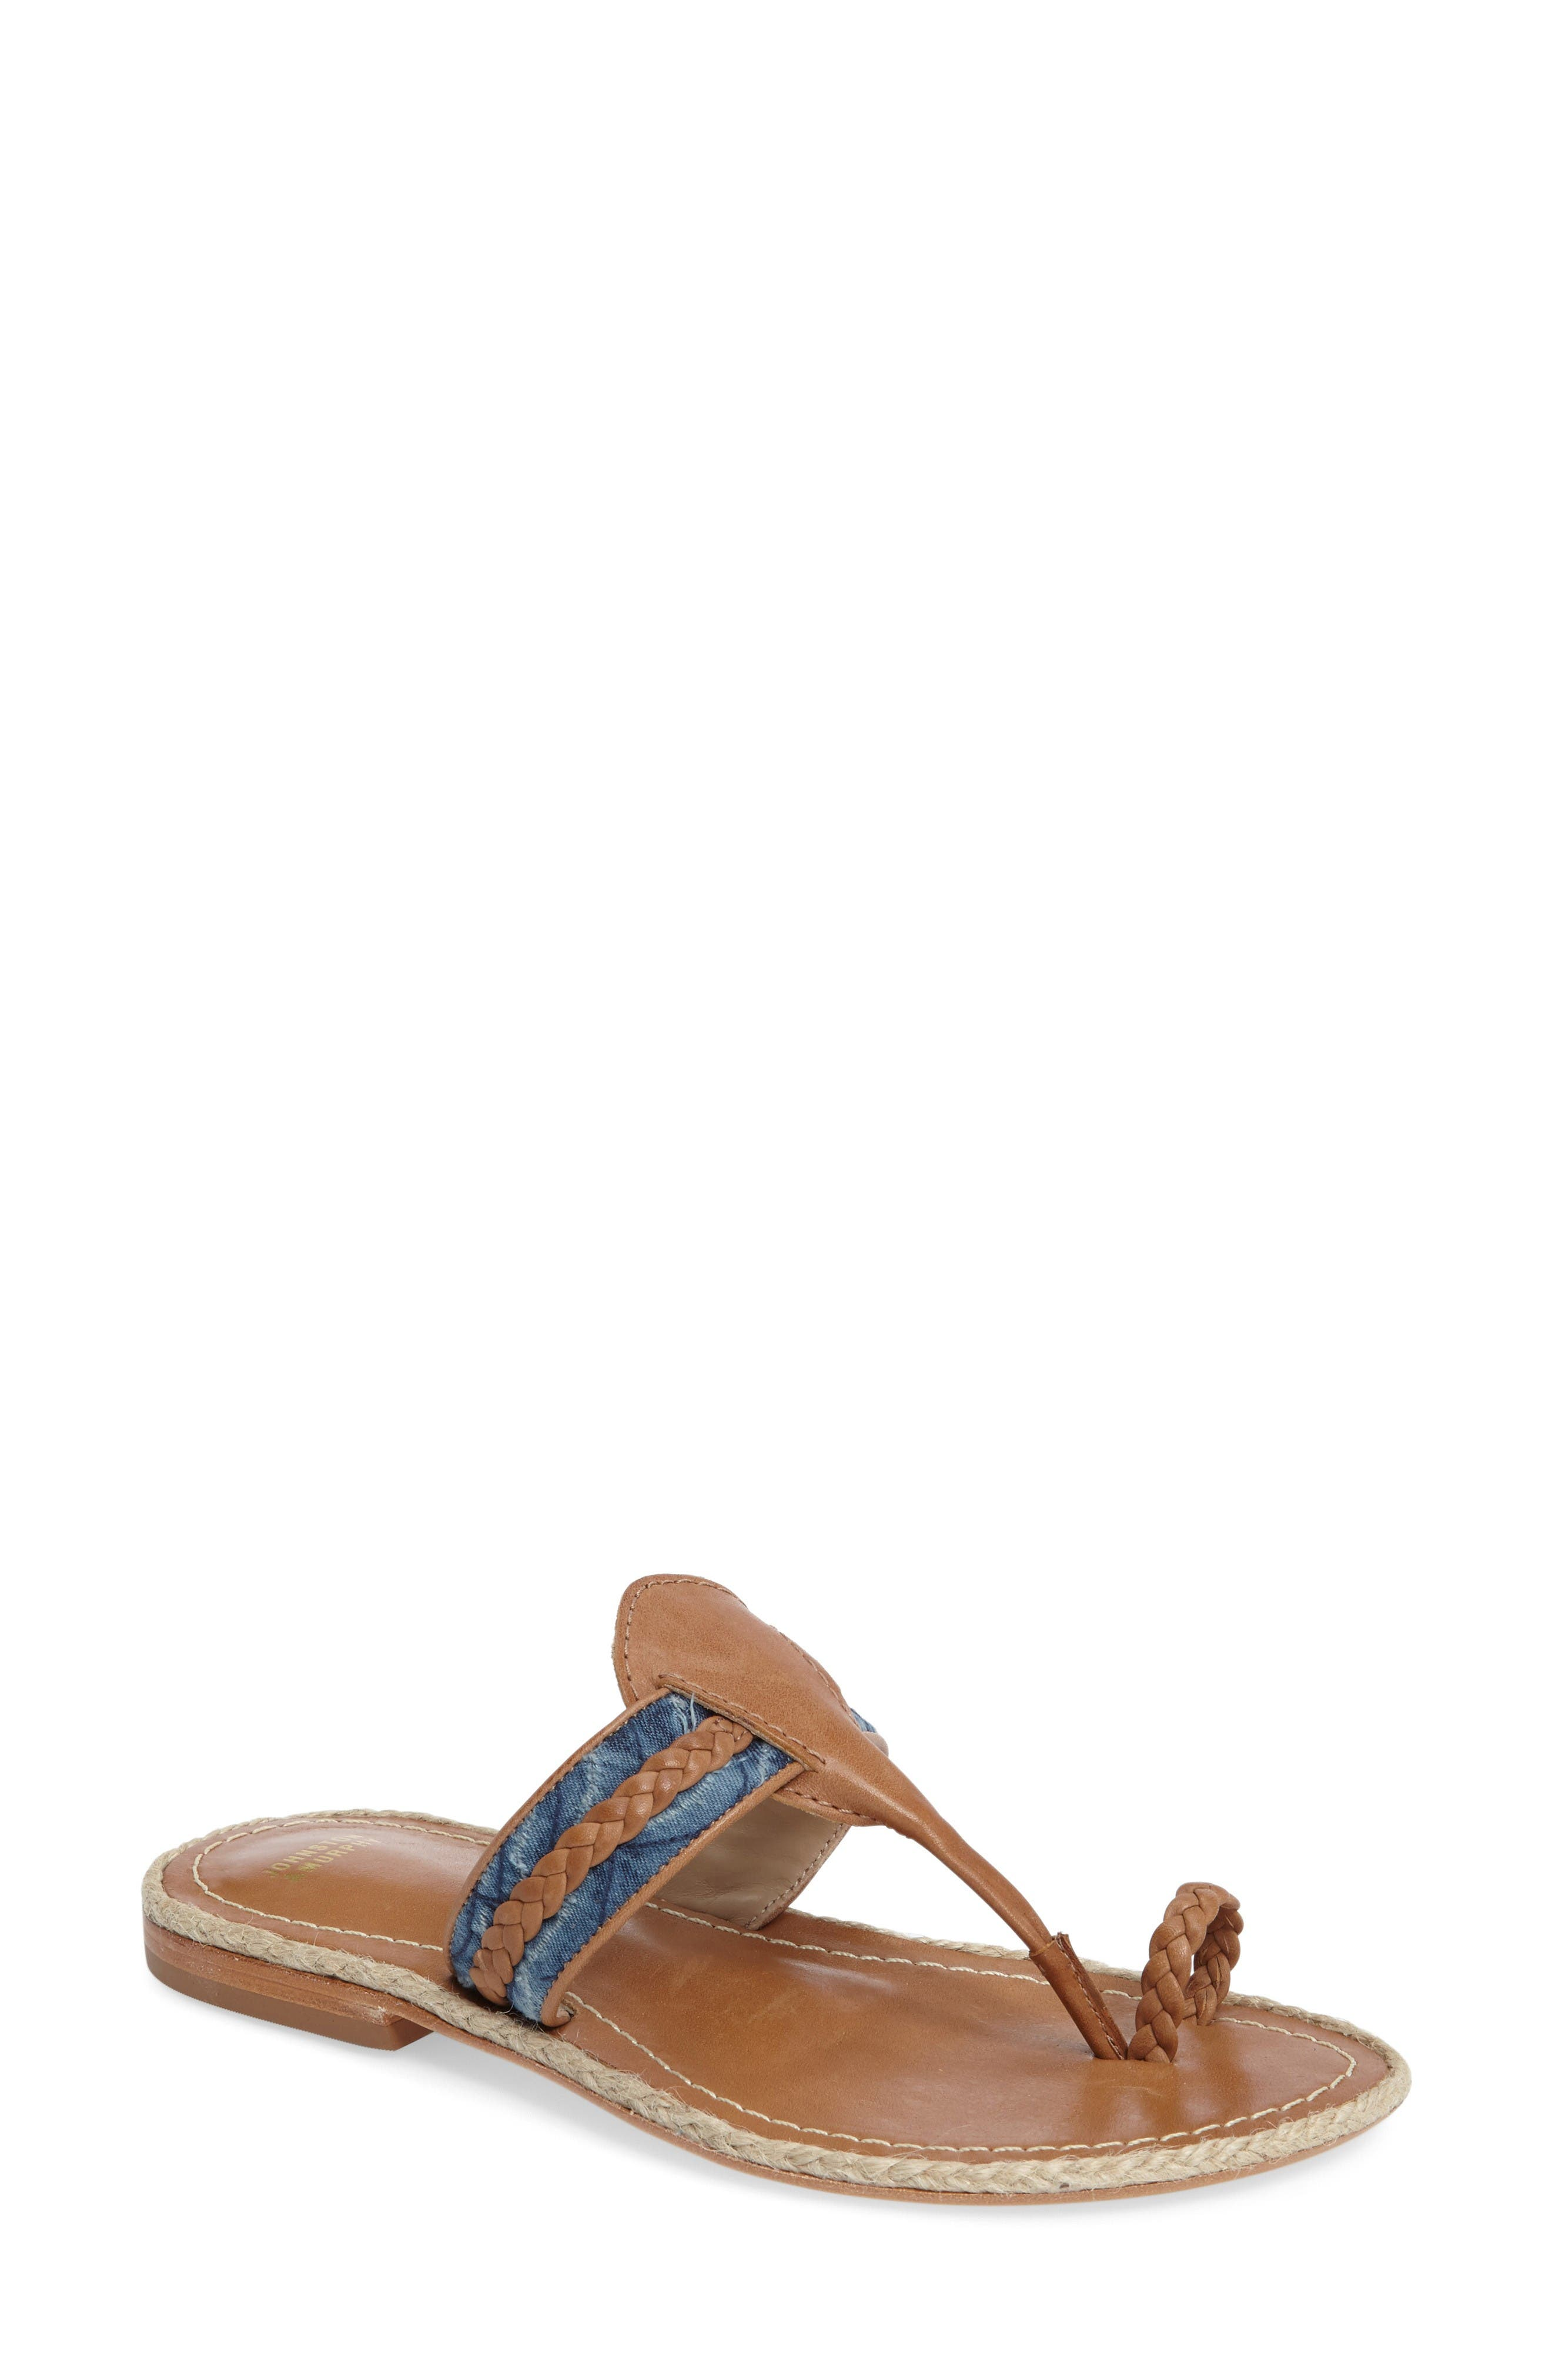 Wendy Sandal,                         Main,                         color, Tan Leather